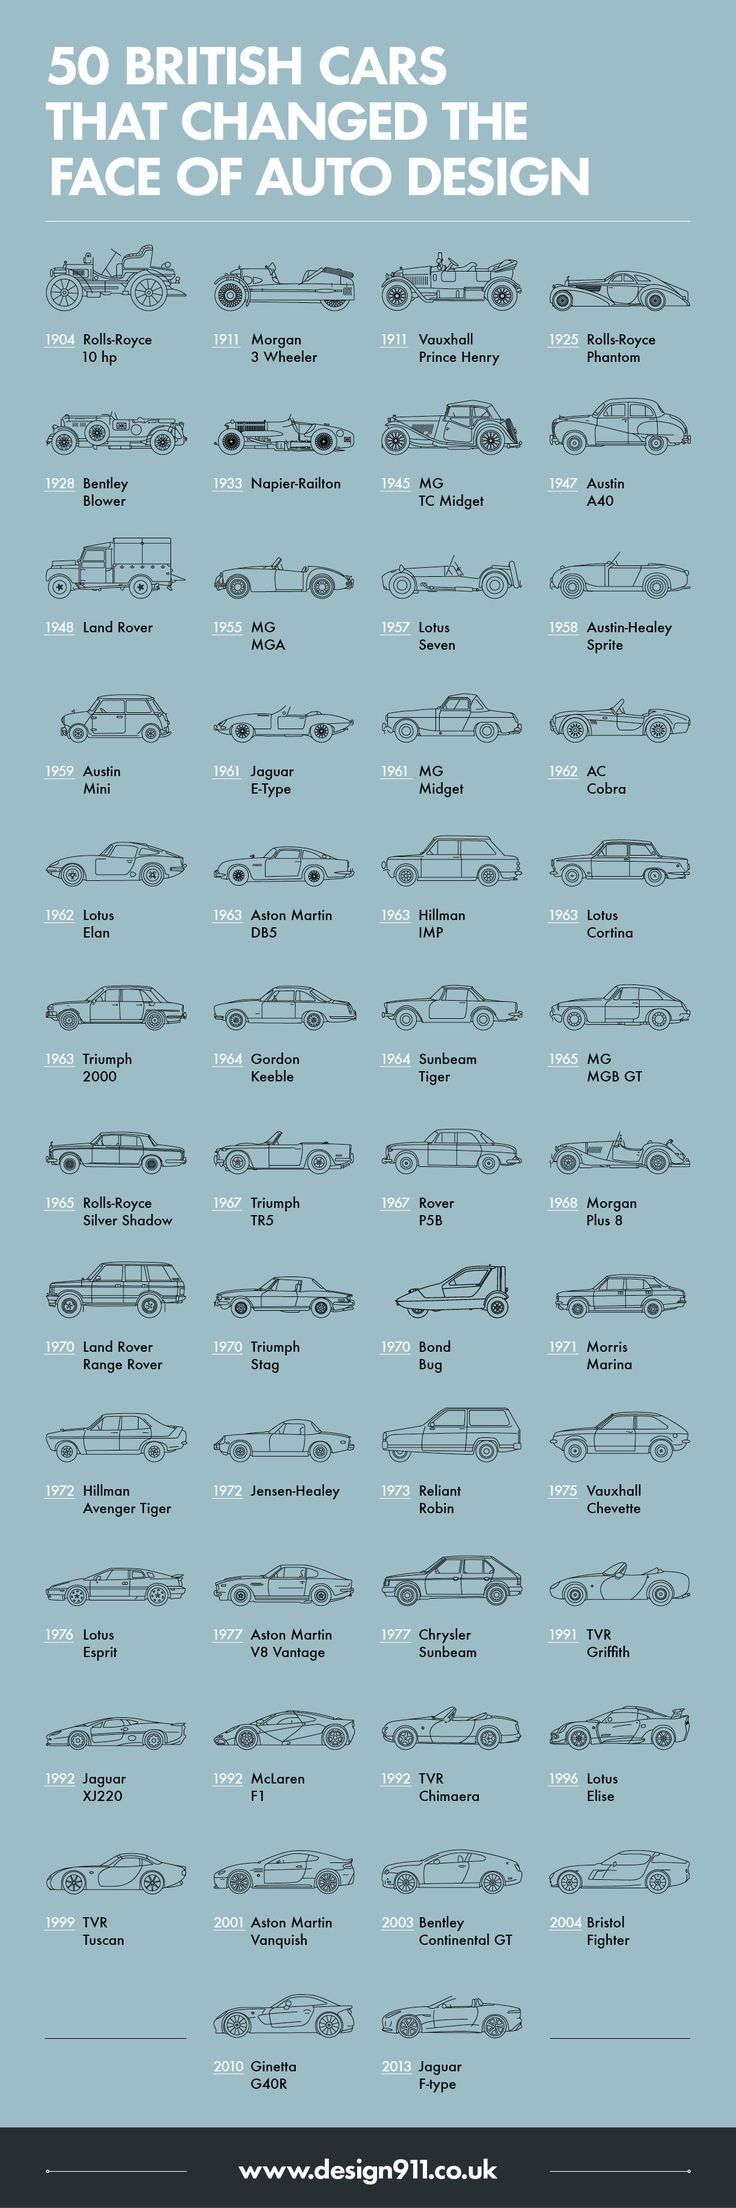 50 British Cars that Changed The Face of Auto Design